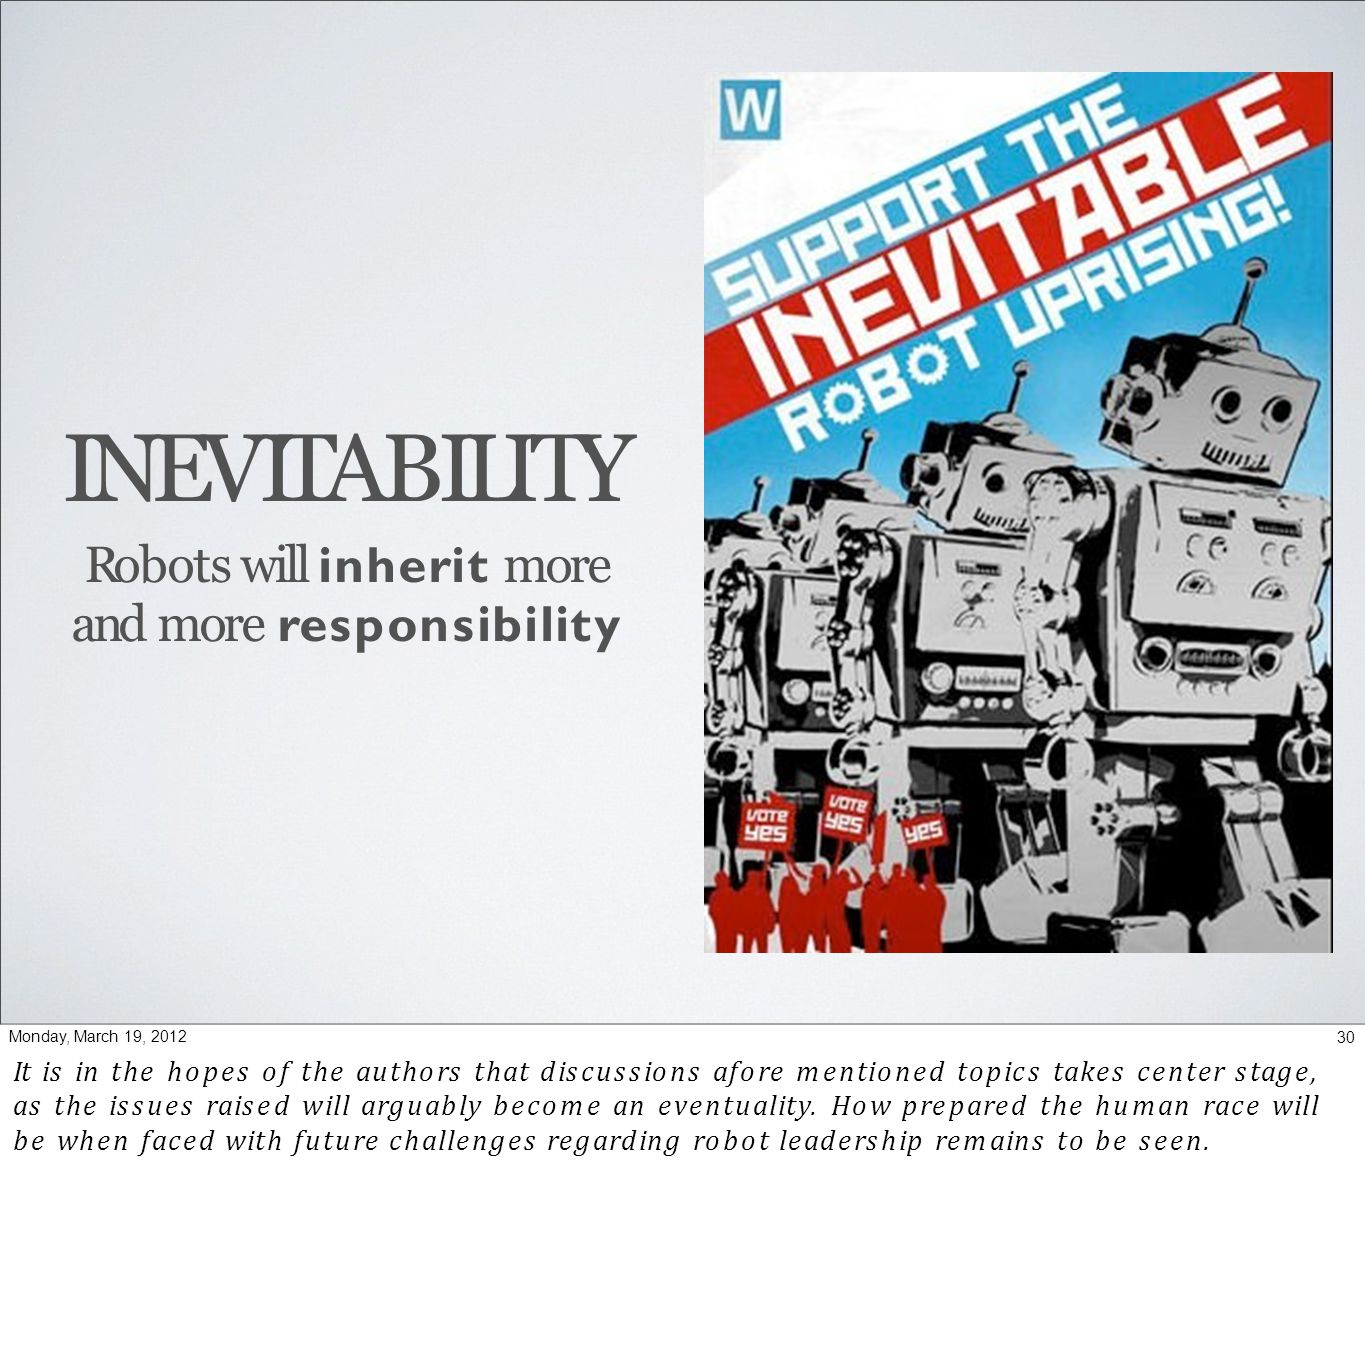 INEVITABILITY Robots will inherit more and more responsibility 30Monday, March 19, 2012 It is in the hopes of the authors that discussions afore mentioned topics takes center stage, as the issues raised will arguably become an eventuality.